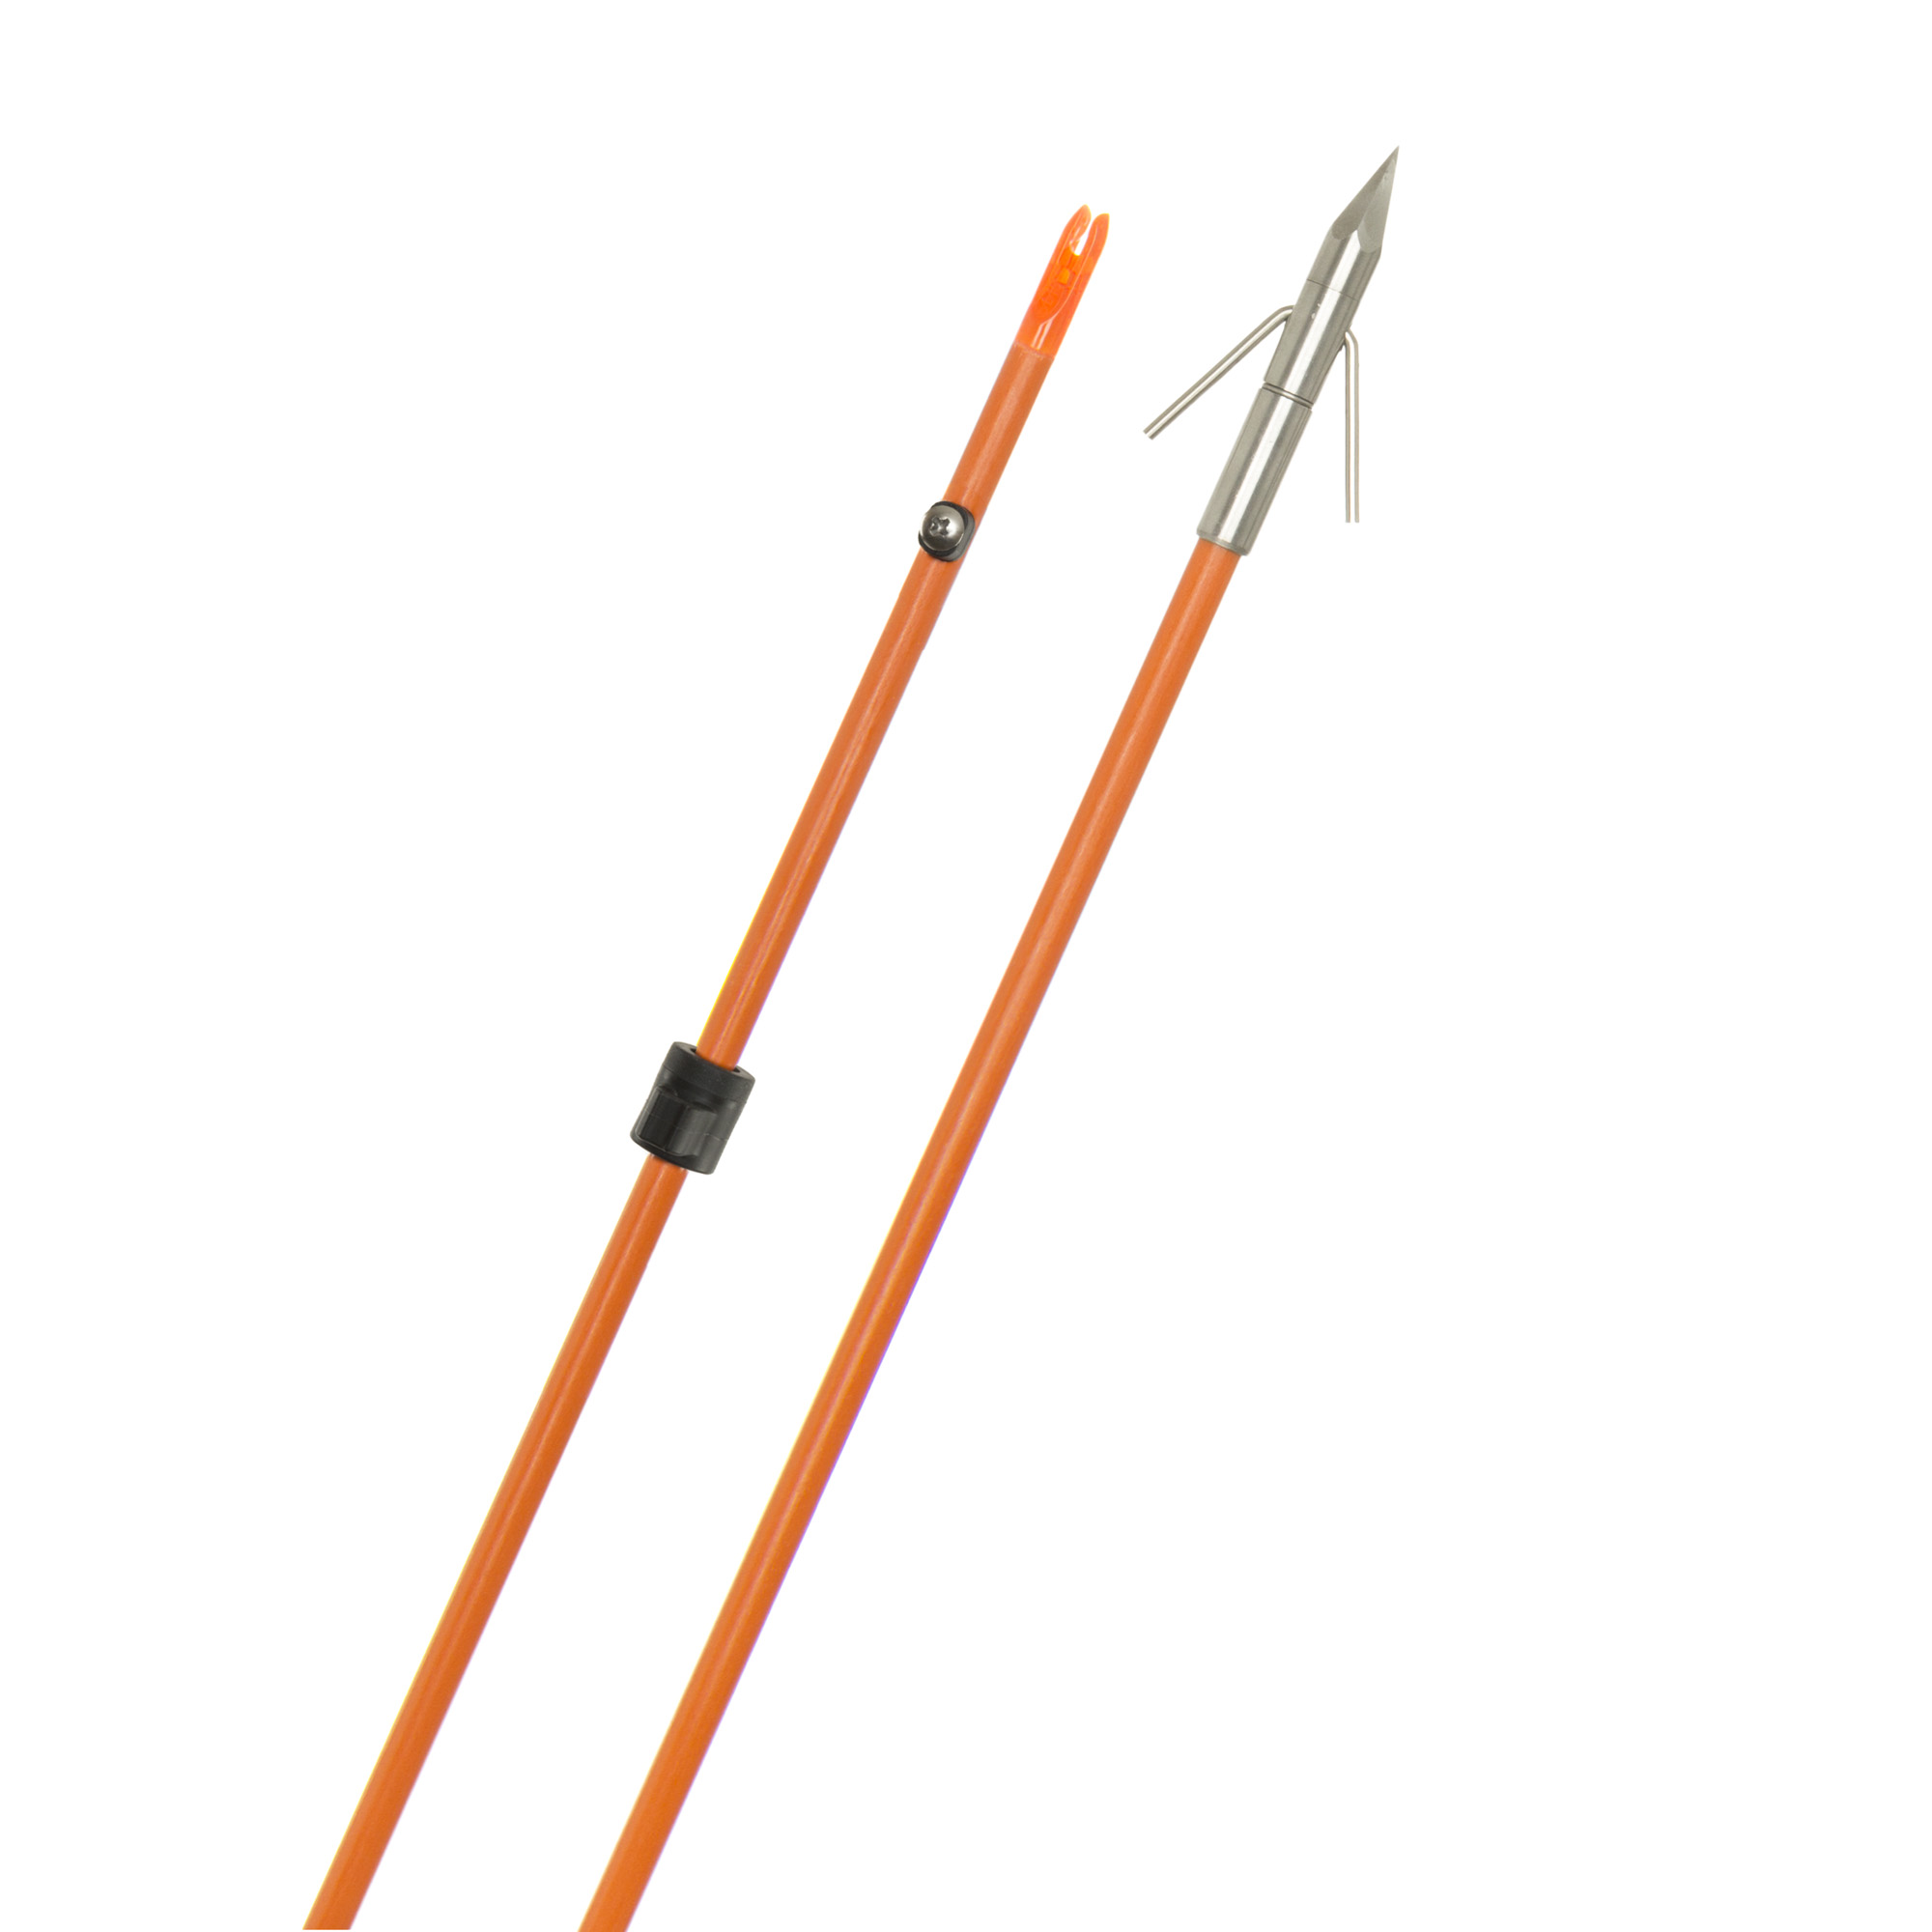 Raider Pro Arrow Orange w/Big Head Pro Point